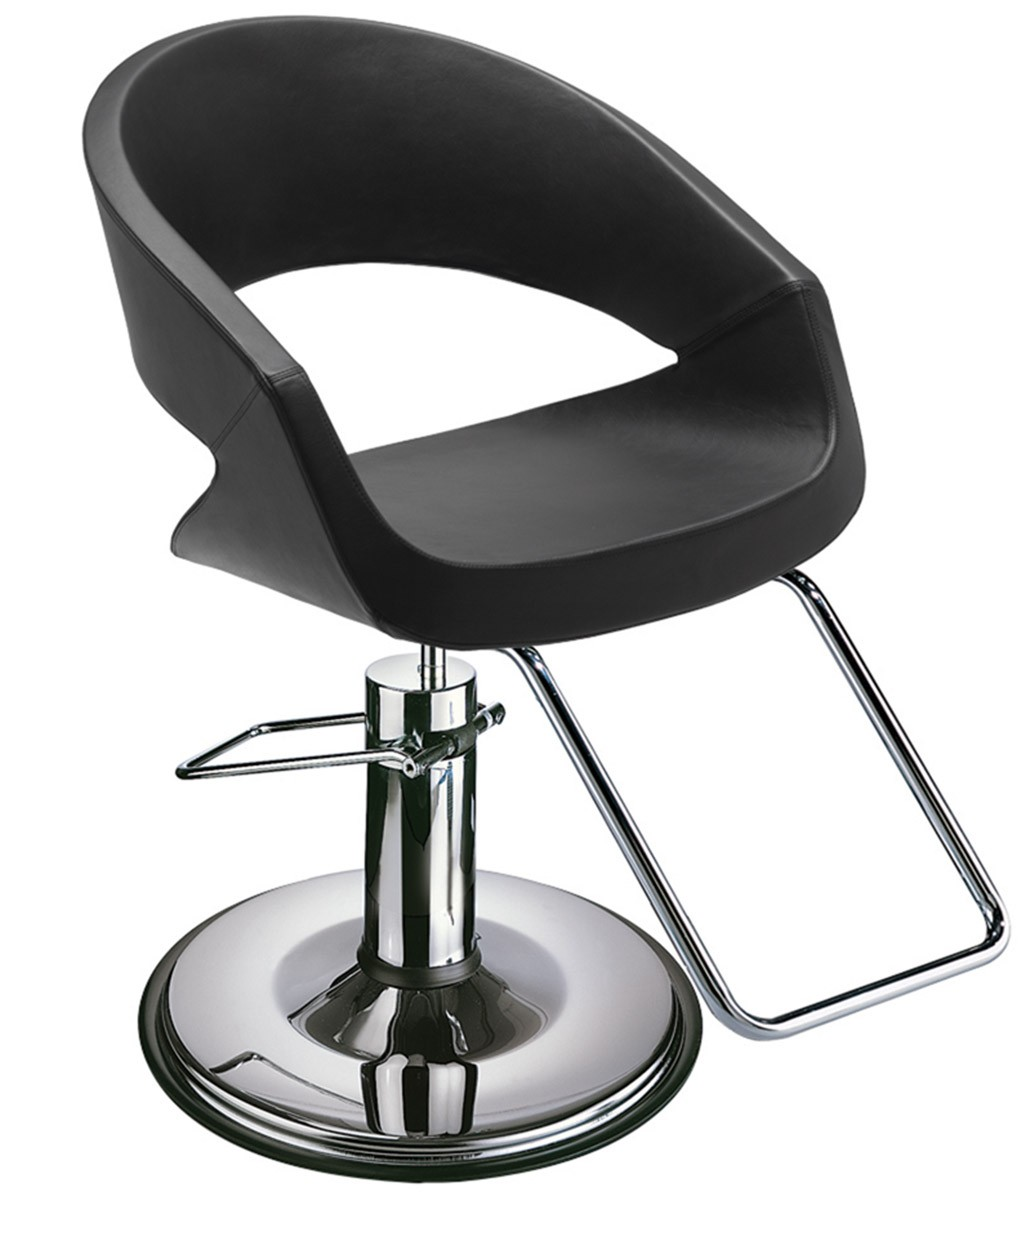 belmont barber chair parts fabric outdoor chairs takara st m80 caruso styling